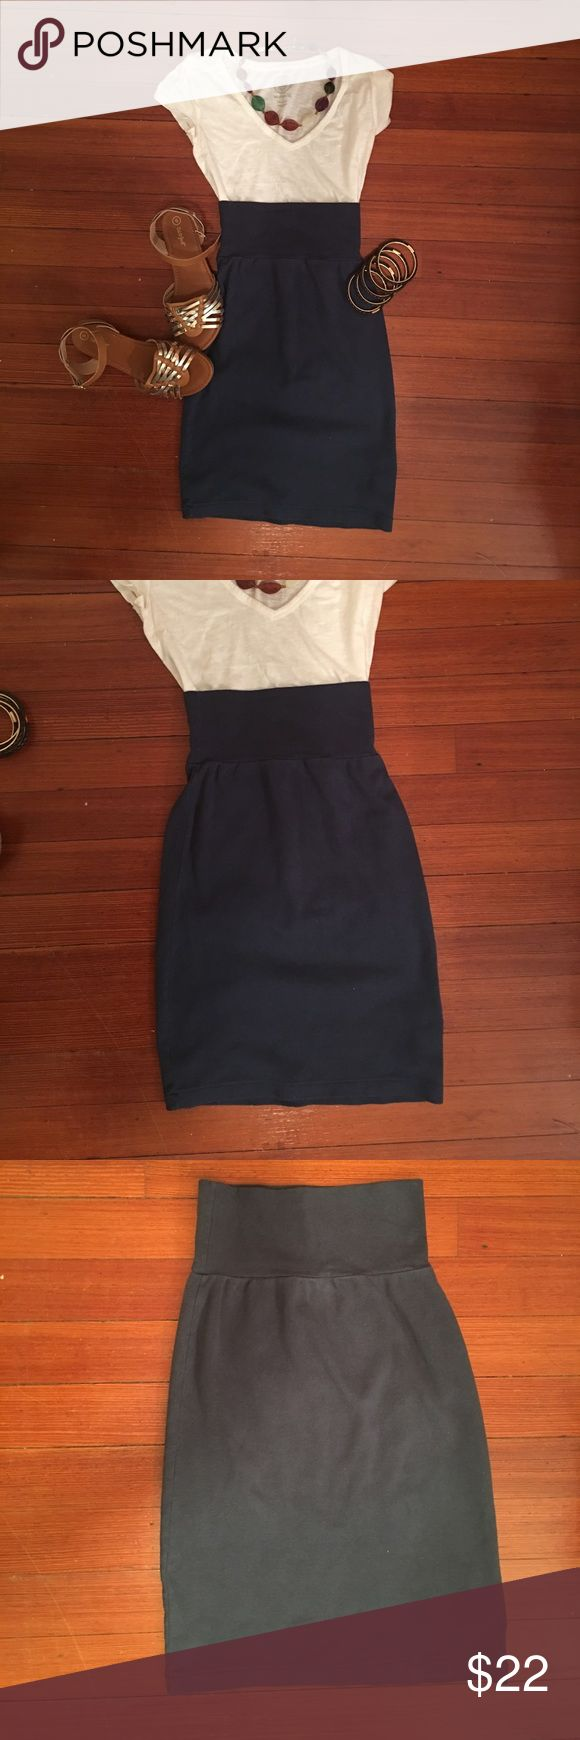 American Apparel XS Classic Girl Pencil Skirt XS Cotton Classic Girl Pencil Skirt from American Apparel in a medium Blue color. Extremely comfortable, great all season- flip flops, heels, knee high boots with or w/o tights. Does not have to be worn high wasted. American Apparel Skirts